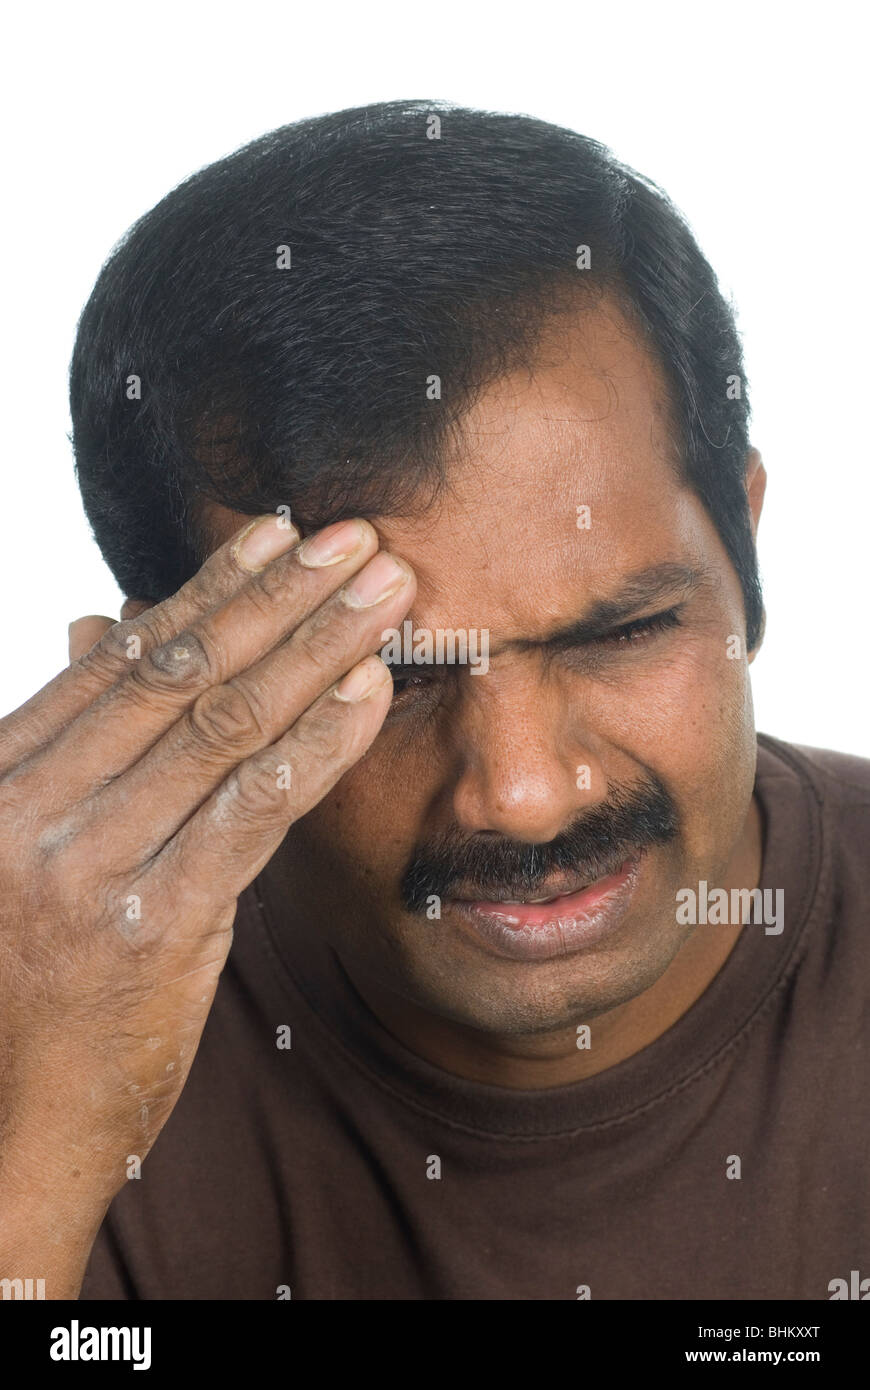 Indian man with a headache against a white background - Stock Image